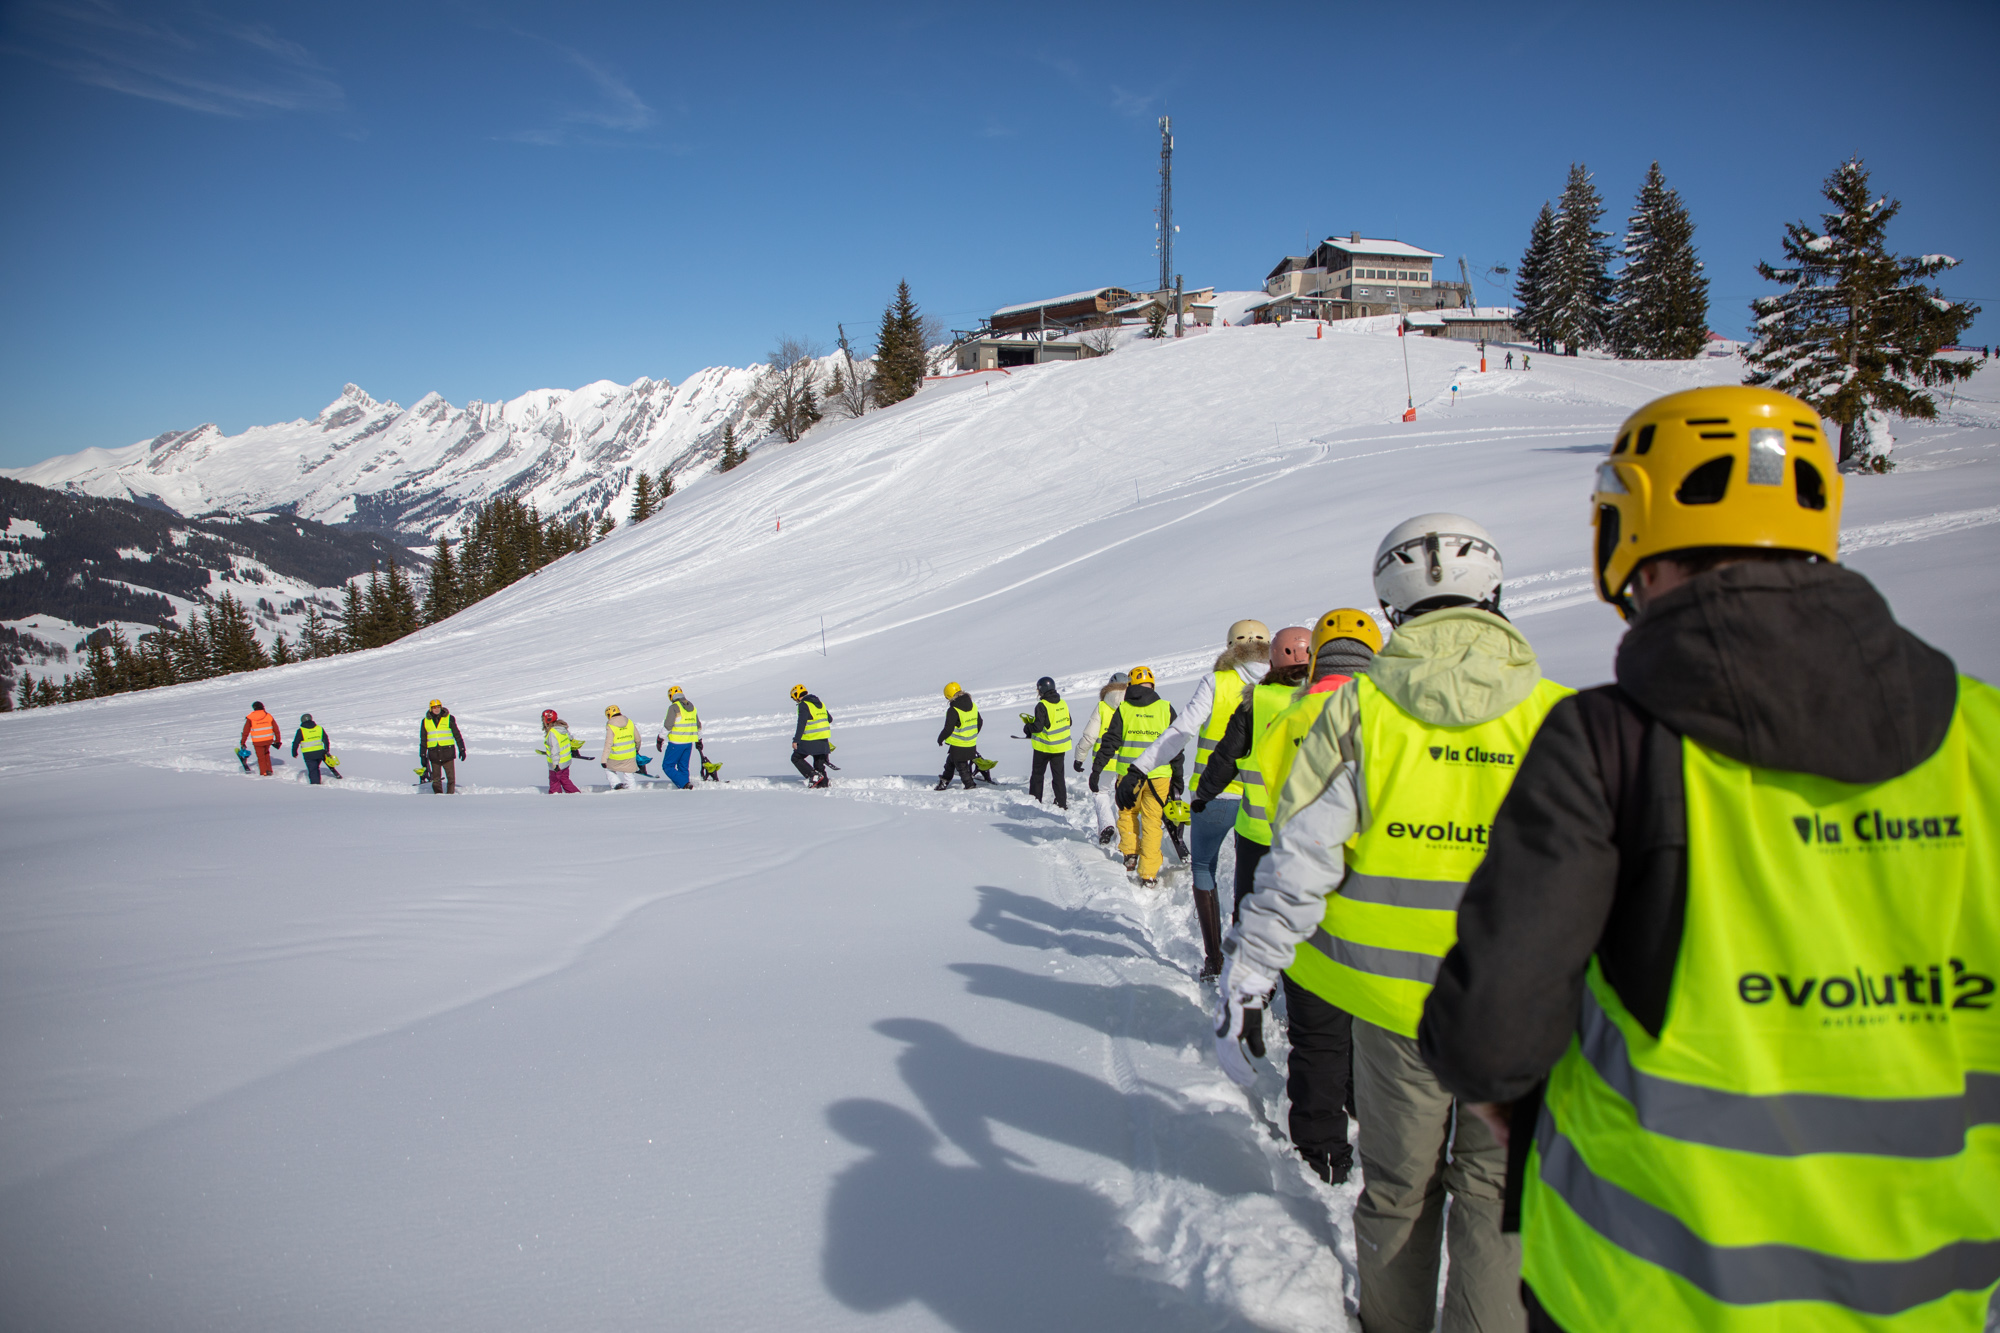 Break_The_Ice_LaClusaz_2019_web-7132.jpg